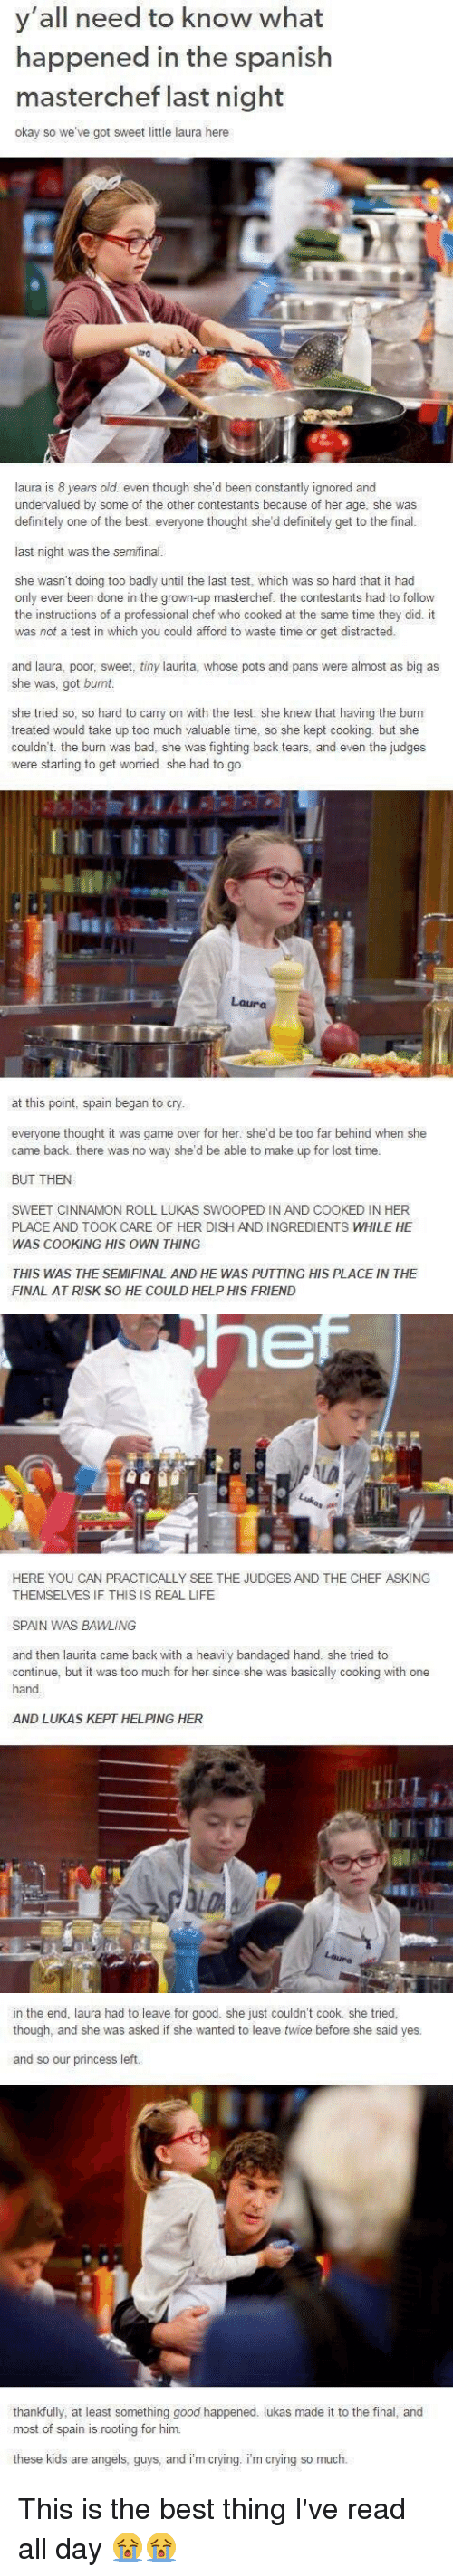 Bad, Crying, and Definitely: y'all need to know what  happened in the spanish  masterchef last night  okay so we've got sweet little laura here  laura is 8 years old. even though she'd been constantly ignored and  undervalued by some of the other contestants because of her age, she was  definitely one of the best. everyone thought she'd definitely get to the final.  last night was the semifinal.  she wasn't doing too badly until the last test, which was so hard that it had  only ever been done in the grown-up masterchef. the contestants had to follow  the instructions of a professional chef who cooked at the same time they did. it  was not a test in which you could afford to waste time or get distracted.   and laura, poor, sweet, tiny laurita, whose pots and pans were almost as big as  she was, got burnt.  she tried so, so hard to carry on with the test. she knew that having the burn  treated would take up too much valuable time, so she kept cooking. but she  couldn't. the burn was bad, she was fighting back tears, and even the judges  were starting to get worried. she had to go.  Laura  at this point, spain began  to cry  everyone thought it was game over for her. she'd be too far behind when she  came back there was no way she'd be able to make up for lost time.  BUT THEN  SWEET CINNAMON ROLL LUKAS SWOOPED IN AND COOKED IN HER  PLACE AND TOOK CARE OF HER DISH AND INGREDIENTS WHILE HE  WAS COOKING HIS OWN THING  THIS WAS THE SEMIFINAL AND HE WAS PUTTING HIS PLACE IN THE  FINAL AT RISK SO HE COULD HELP HIS FRIEND   hef  HERE YOU CAN PRACTICALLY SEE THE JUDGES AND THE CHEF ASKING  THEMSELVES IF THIS IS REAL LIFE  SPAN WAS BAWLING  and then laurita came back with a heavily bandaged hand. she tried to  continue, but it was too much for her since she was basically cooking with one  hand  AND LUKAS KEPT HELPING HER   in the end laura had to leave for good. she just couldn't cook she tried,  though, and she was asked if she wanted to leave twice before she said yes.  and 